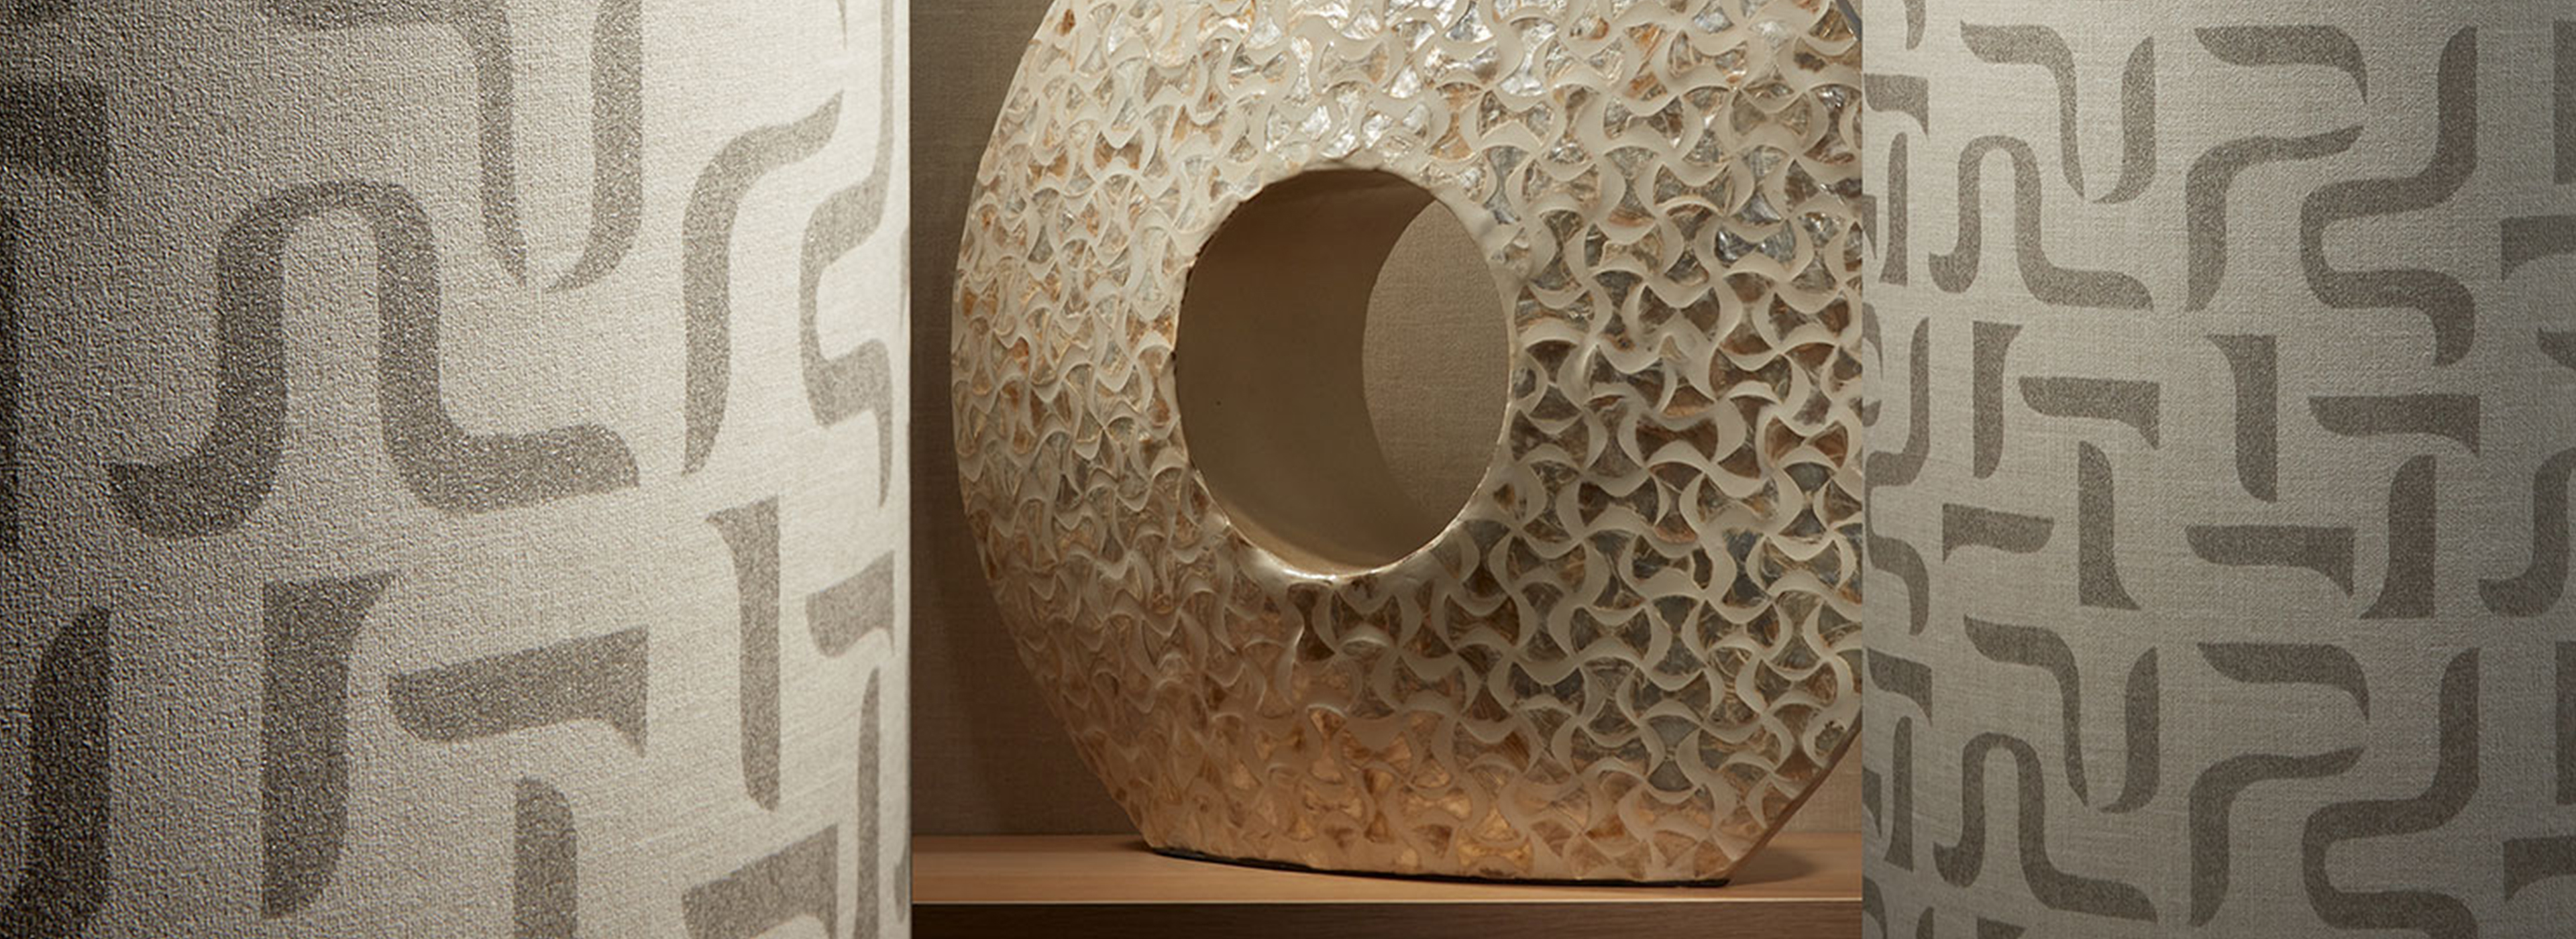 Cappi Wallcovering from LEVEY Commercial and Architectural Finishes